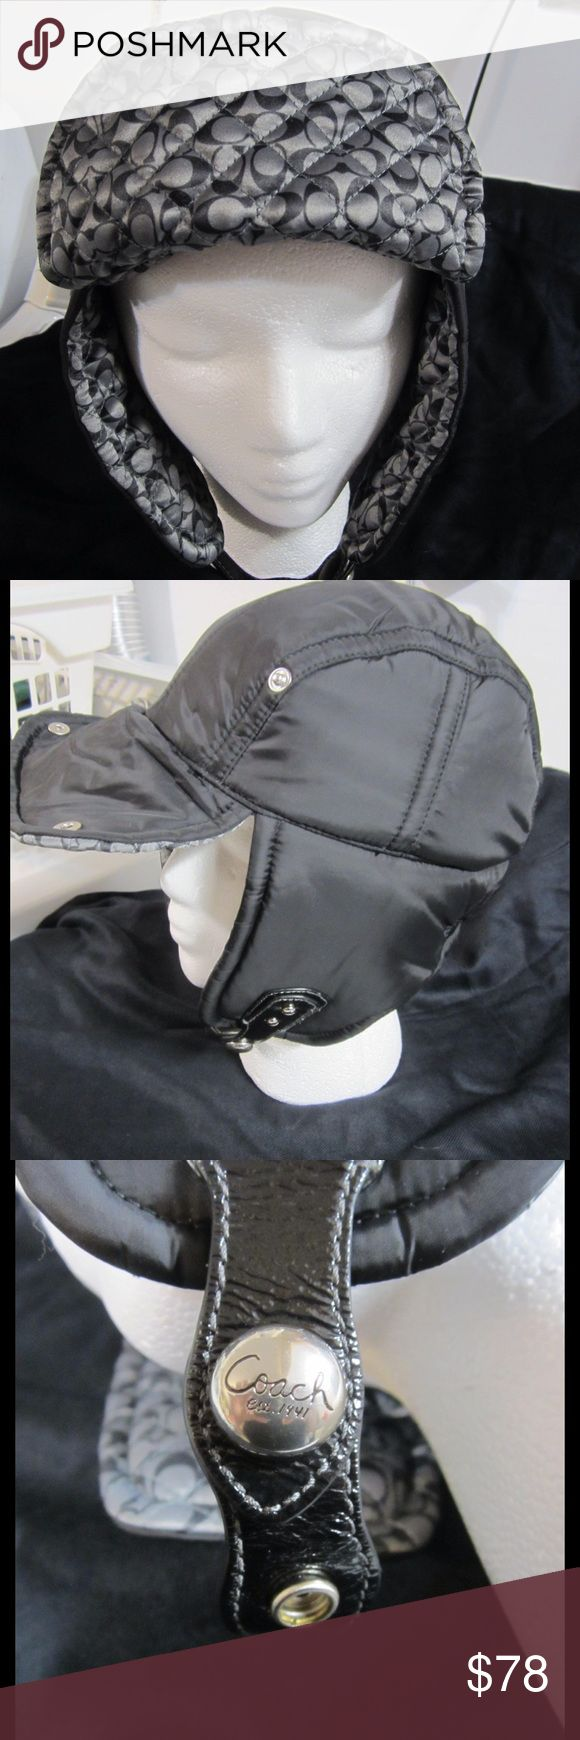 Coach Hat Black and gray trapper/bomber winter hat. Size small. Silver snap under chin. Coach Accessories Hats